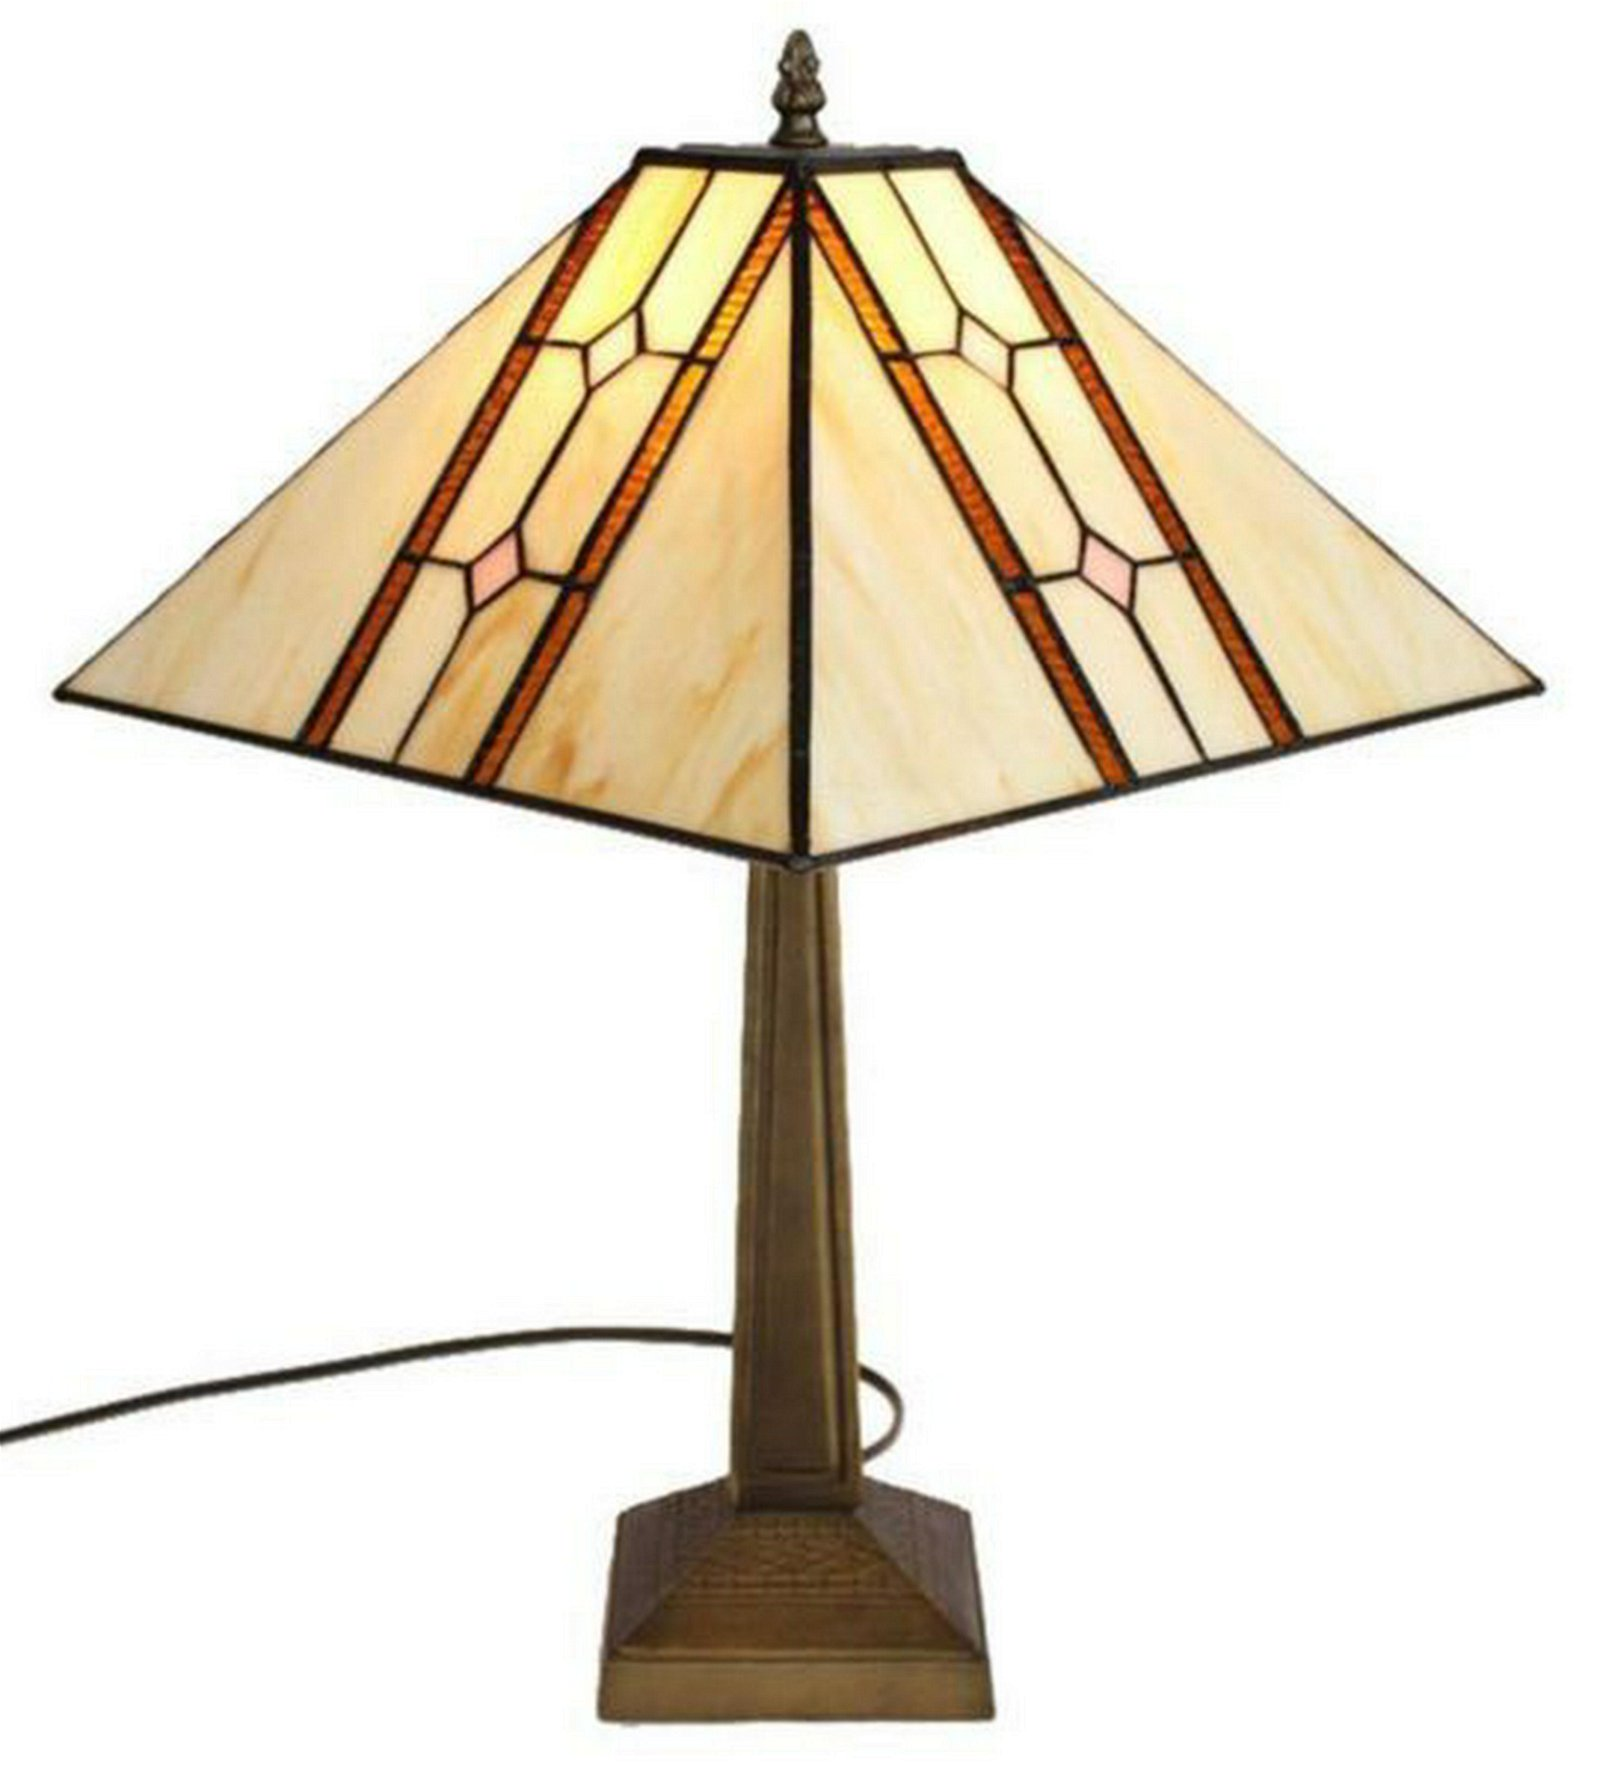 LIGHTING TIFFANY STYLE MISSION TABLE LAMP